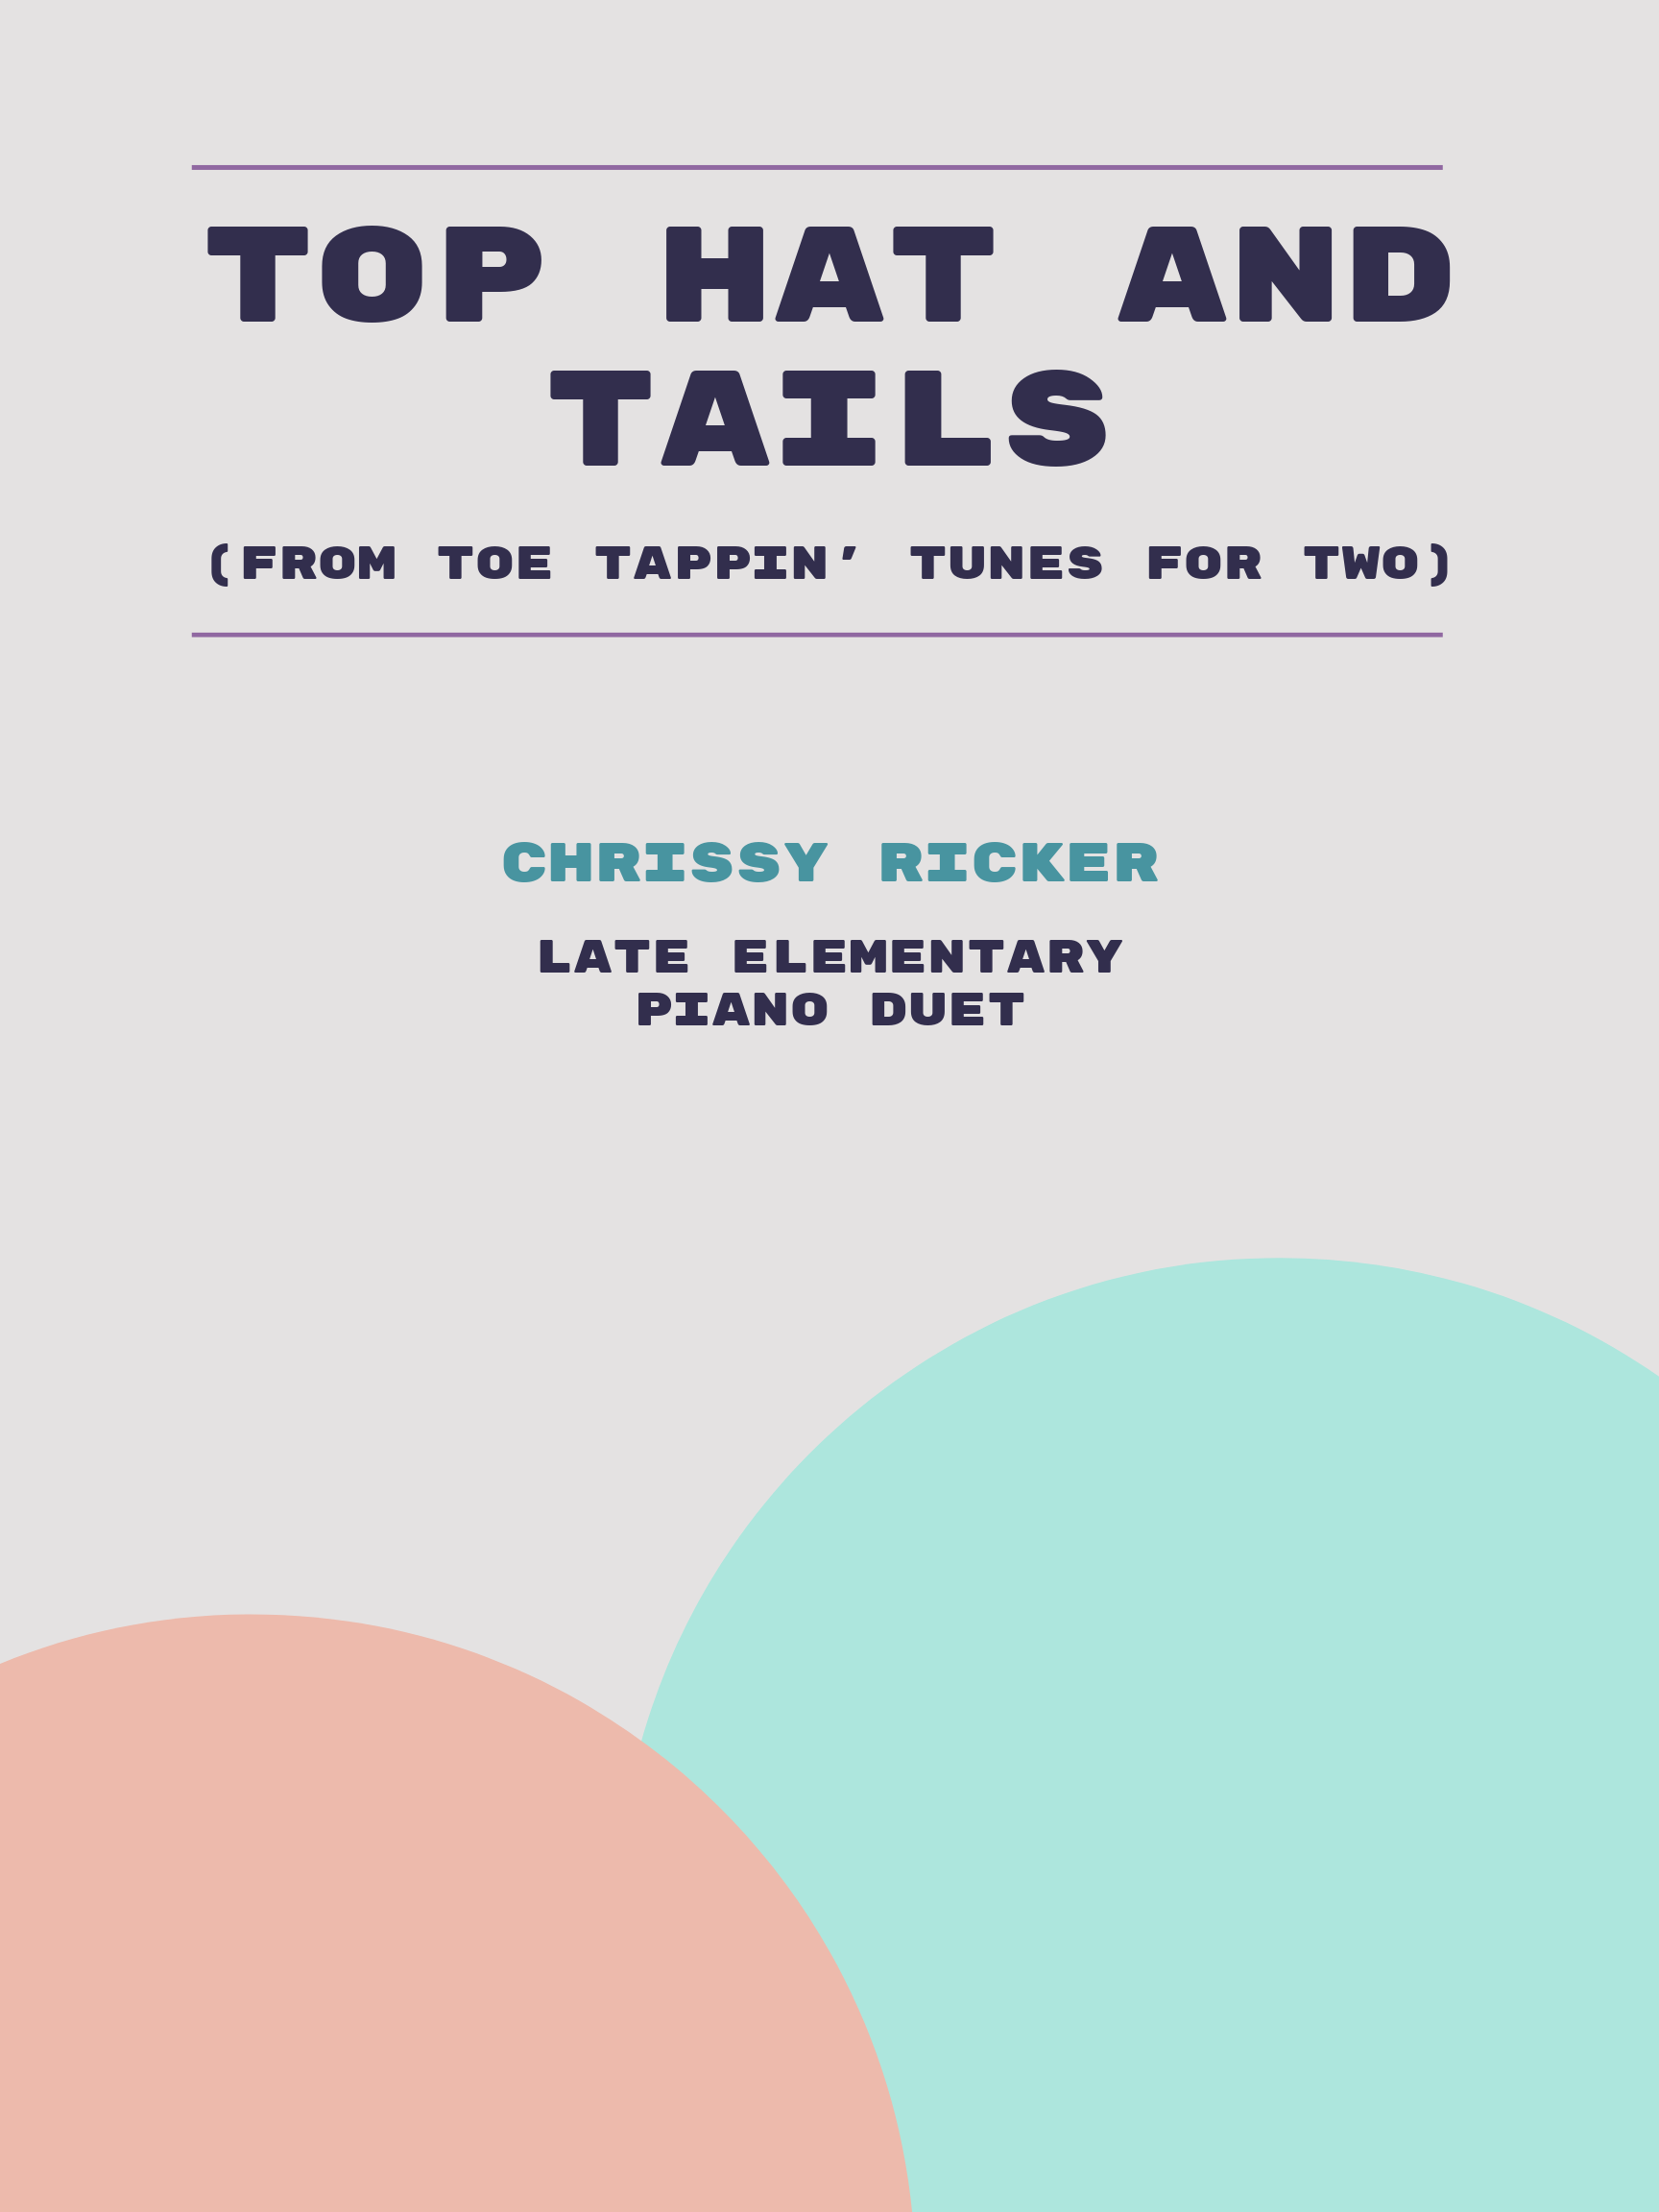 Top Hat and Tails by Chrissy Ricker